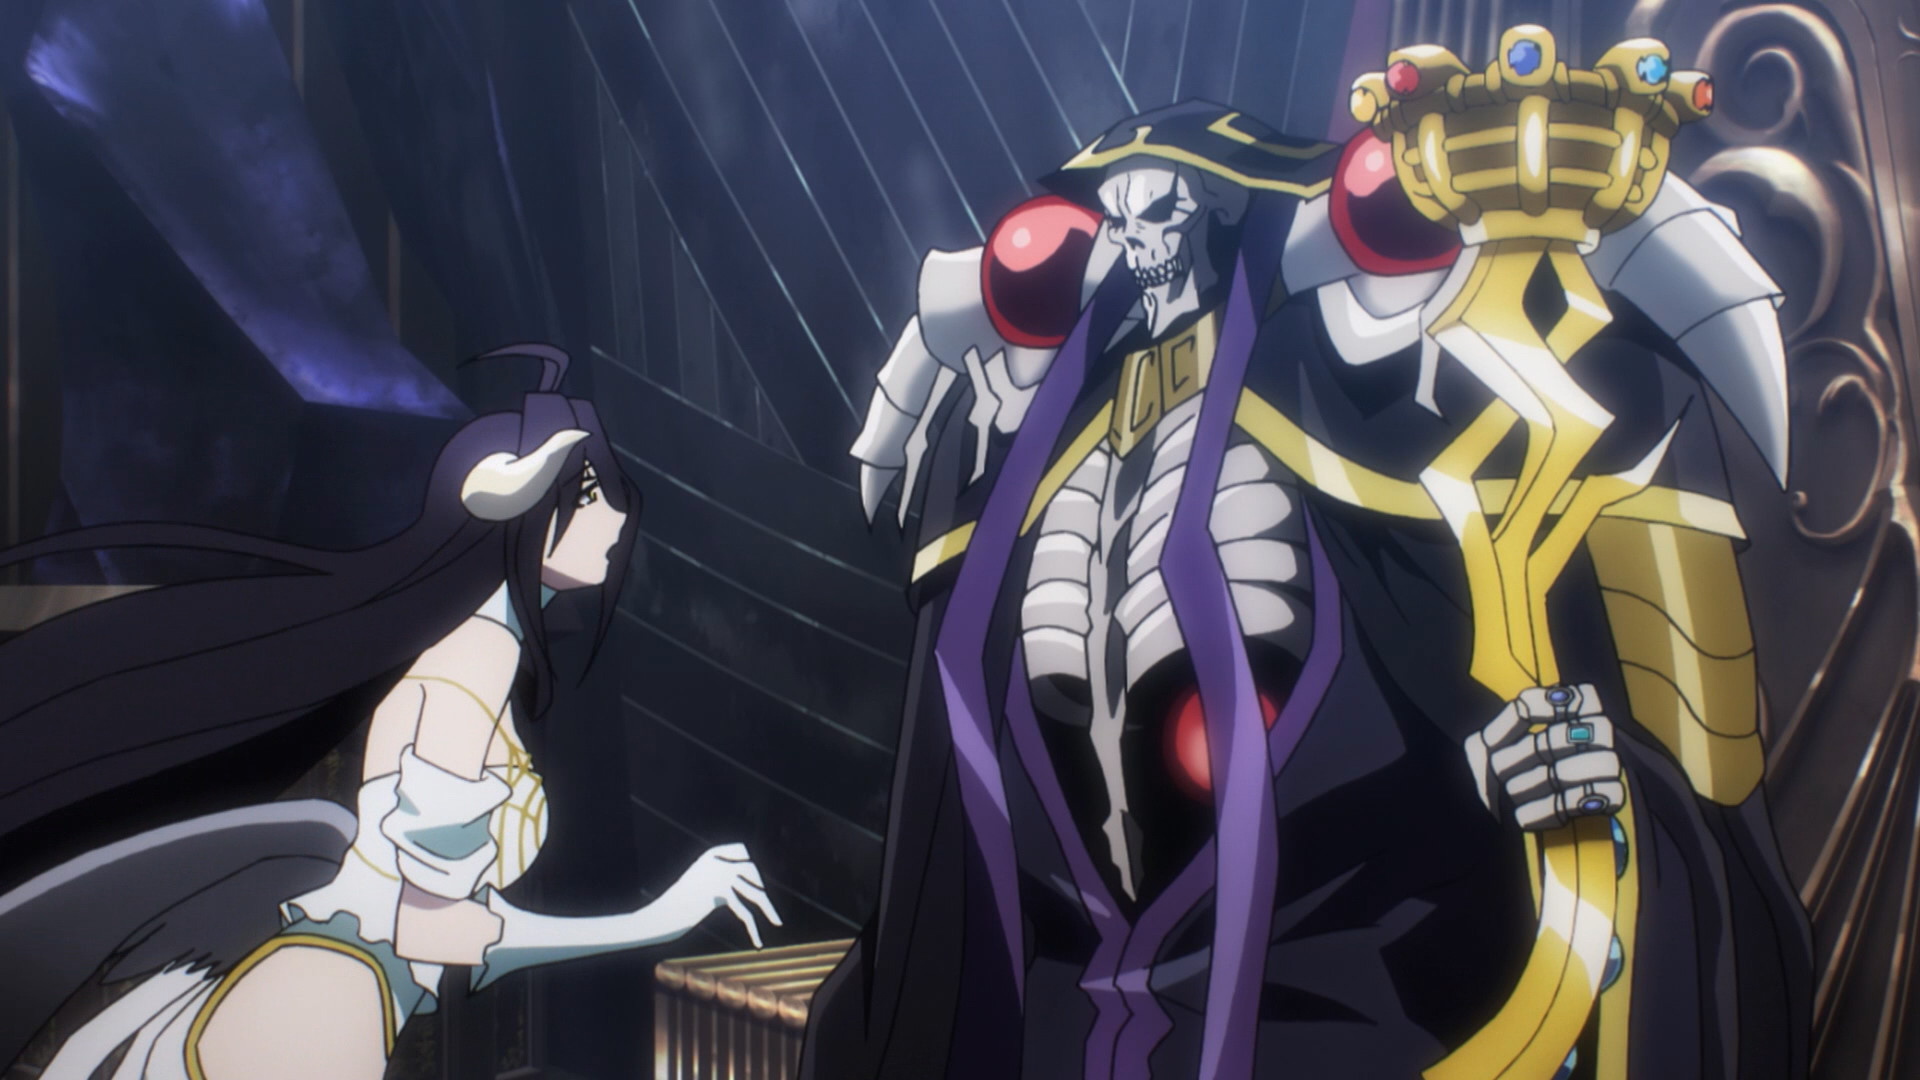 Albedo and Ainz Ooal Gown, Ainz Ooal Gown (Right) with Albedo (Left